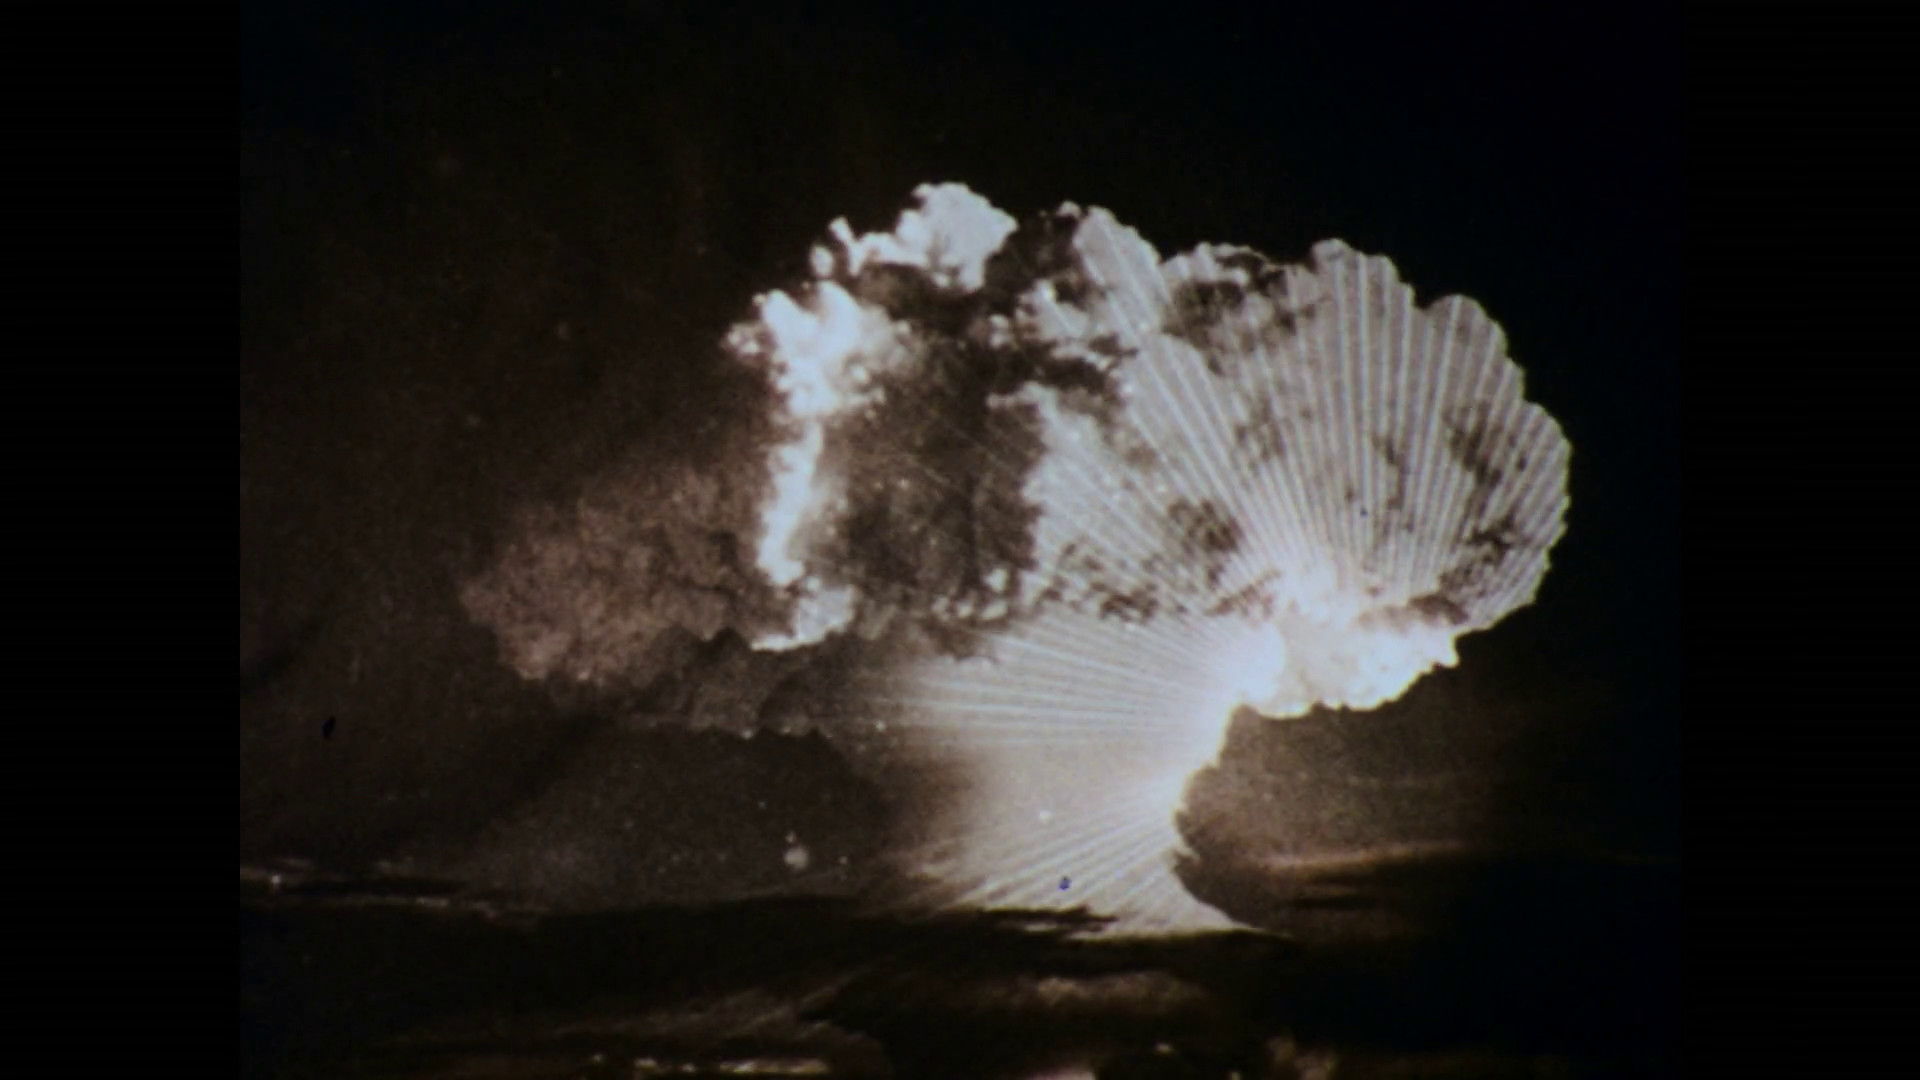 1920x1080 UNITED STATES 1960s: Mushroom Cloud and Radioactive Fallout Stock Video  Footage - Storyblocks Video